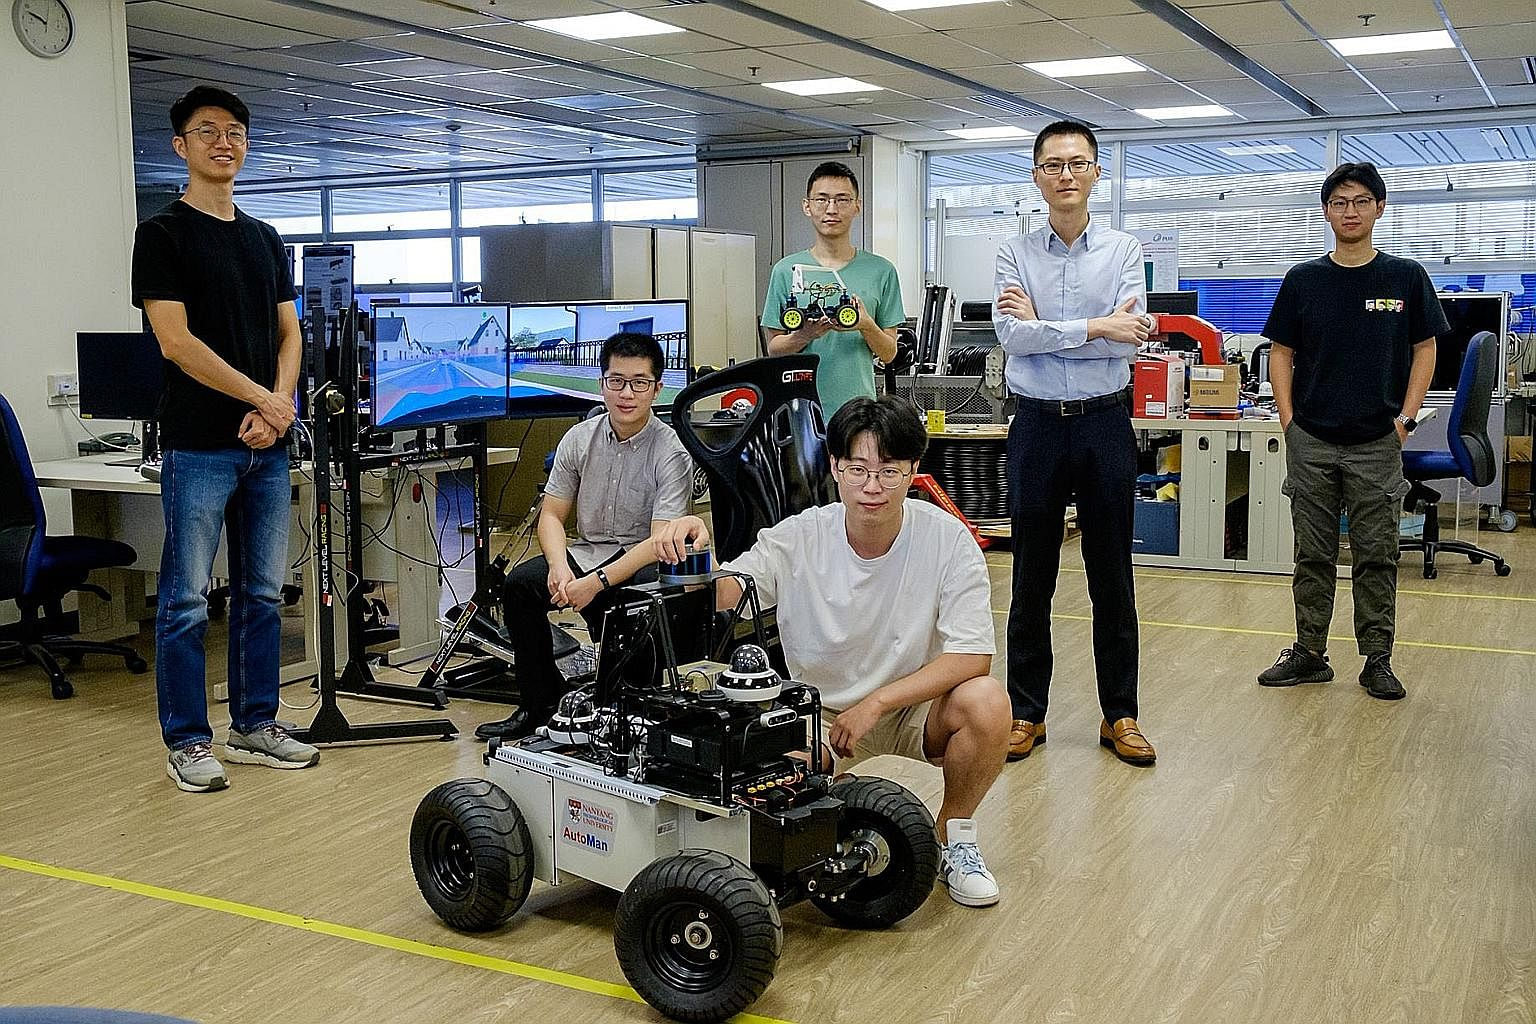 The NTU team comprised Assistant Professor Lyu Chen (second from right) and PhD students Mo Xiaoyu (at far left) and Huang Zhiyu (far right). With them are PhD students (from second left) Zhang Yiran, Wu Jingda (in green), and Huang Wenhui, who are i